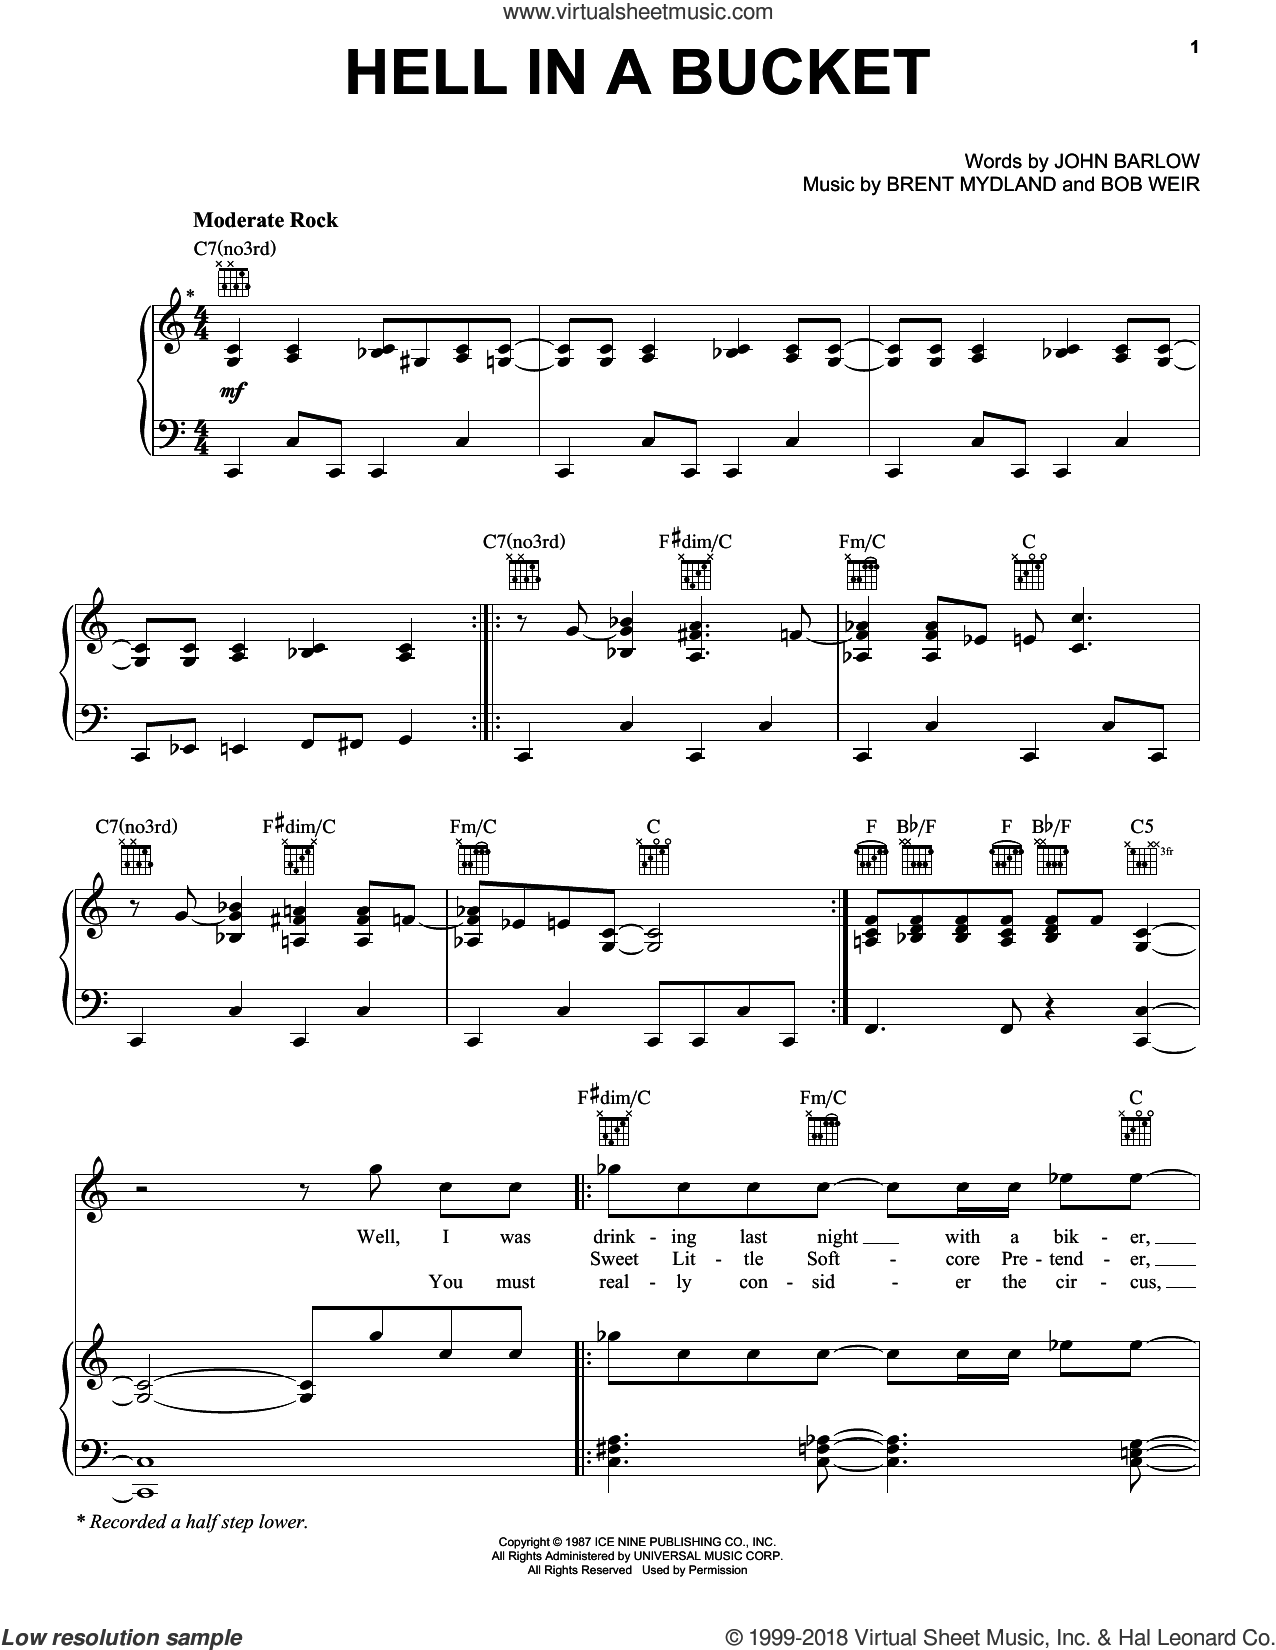 Hell In A Bucket sheet music for voice, piano or guitar by John Barlow, Bob Weir, Brent Mydland and Grateful Dead. Score Image Preview.